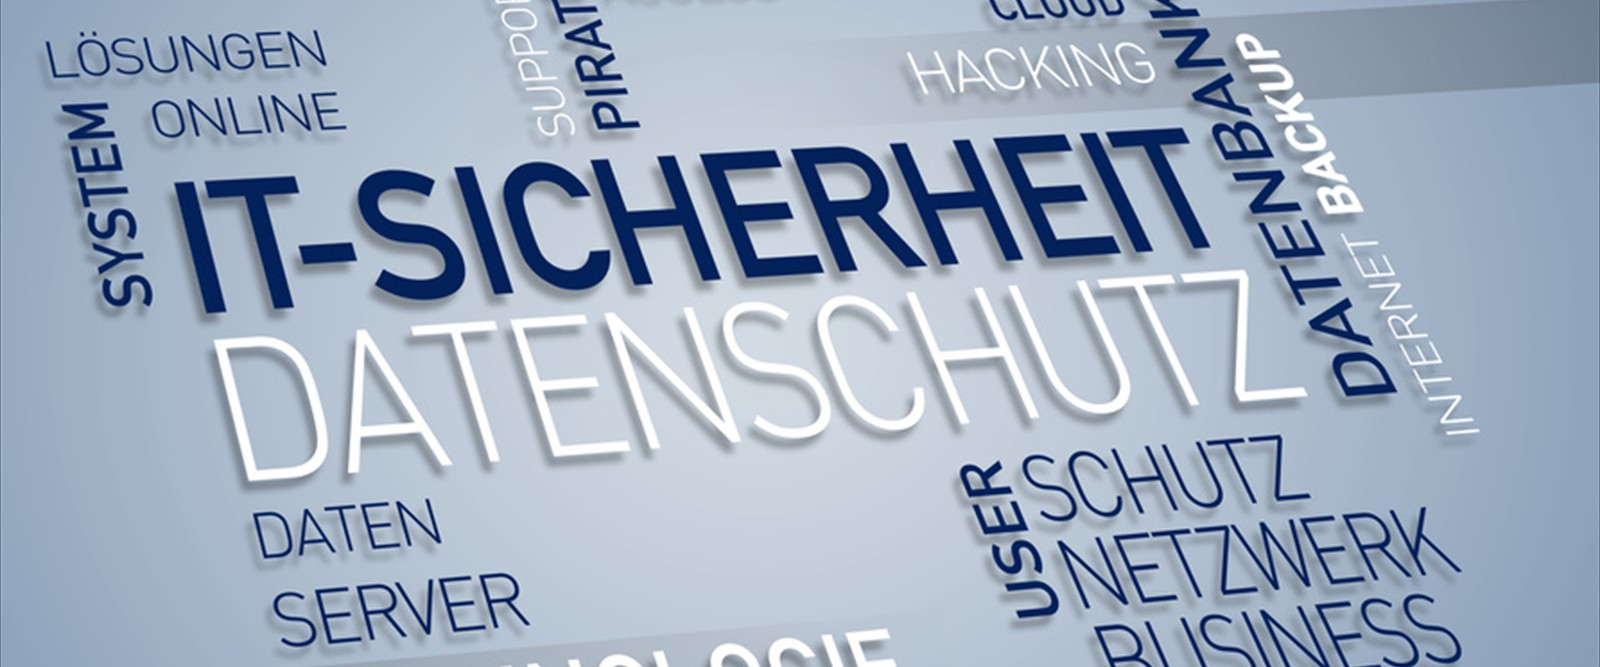 IT Security ist unerlaesslich